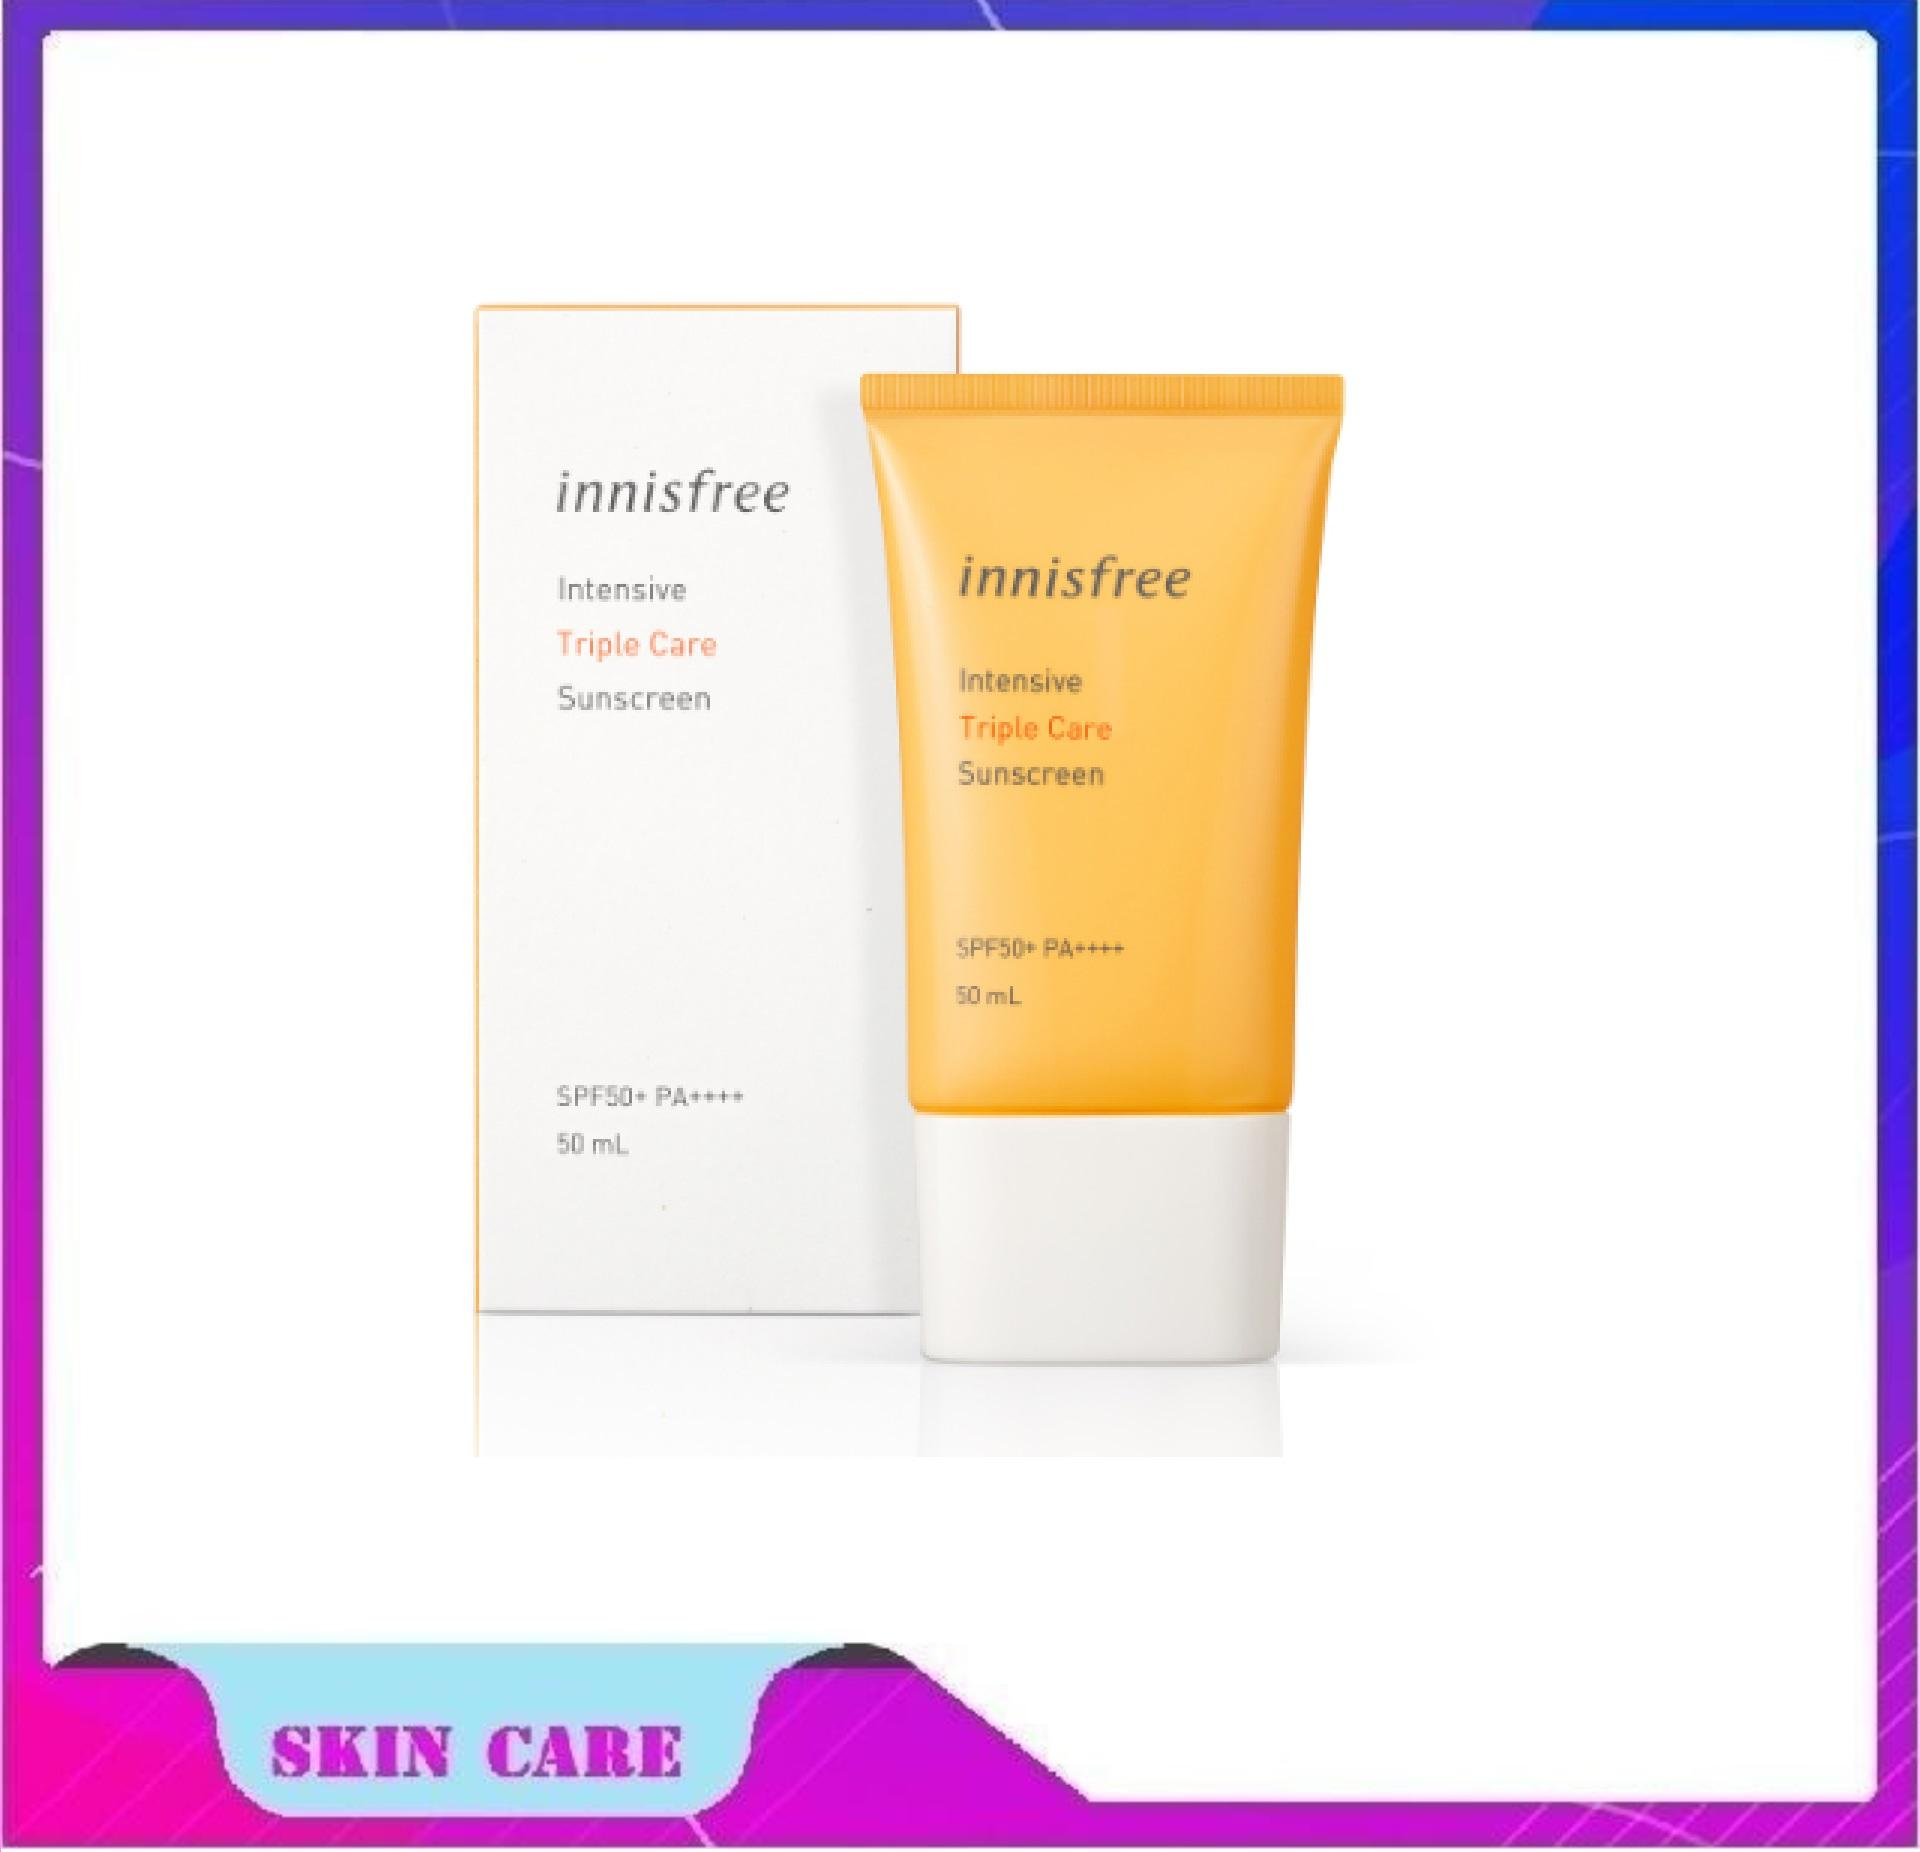 [NEW 2019] Kem chống nắng Innisfree Intensive Triple Care Sunscreen SPF50+/PA+++